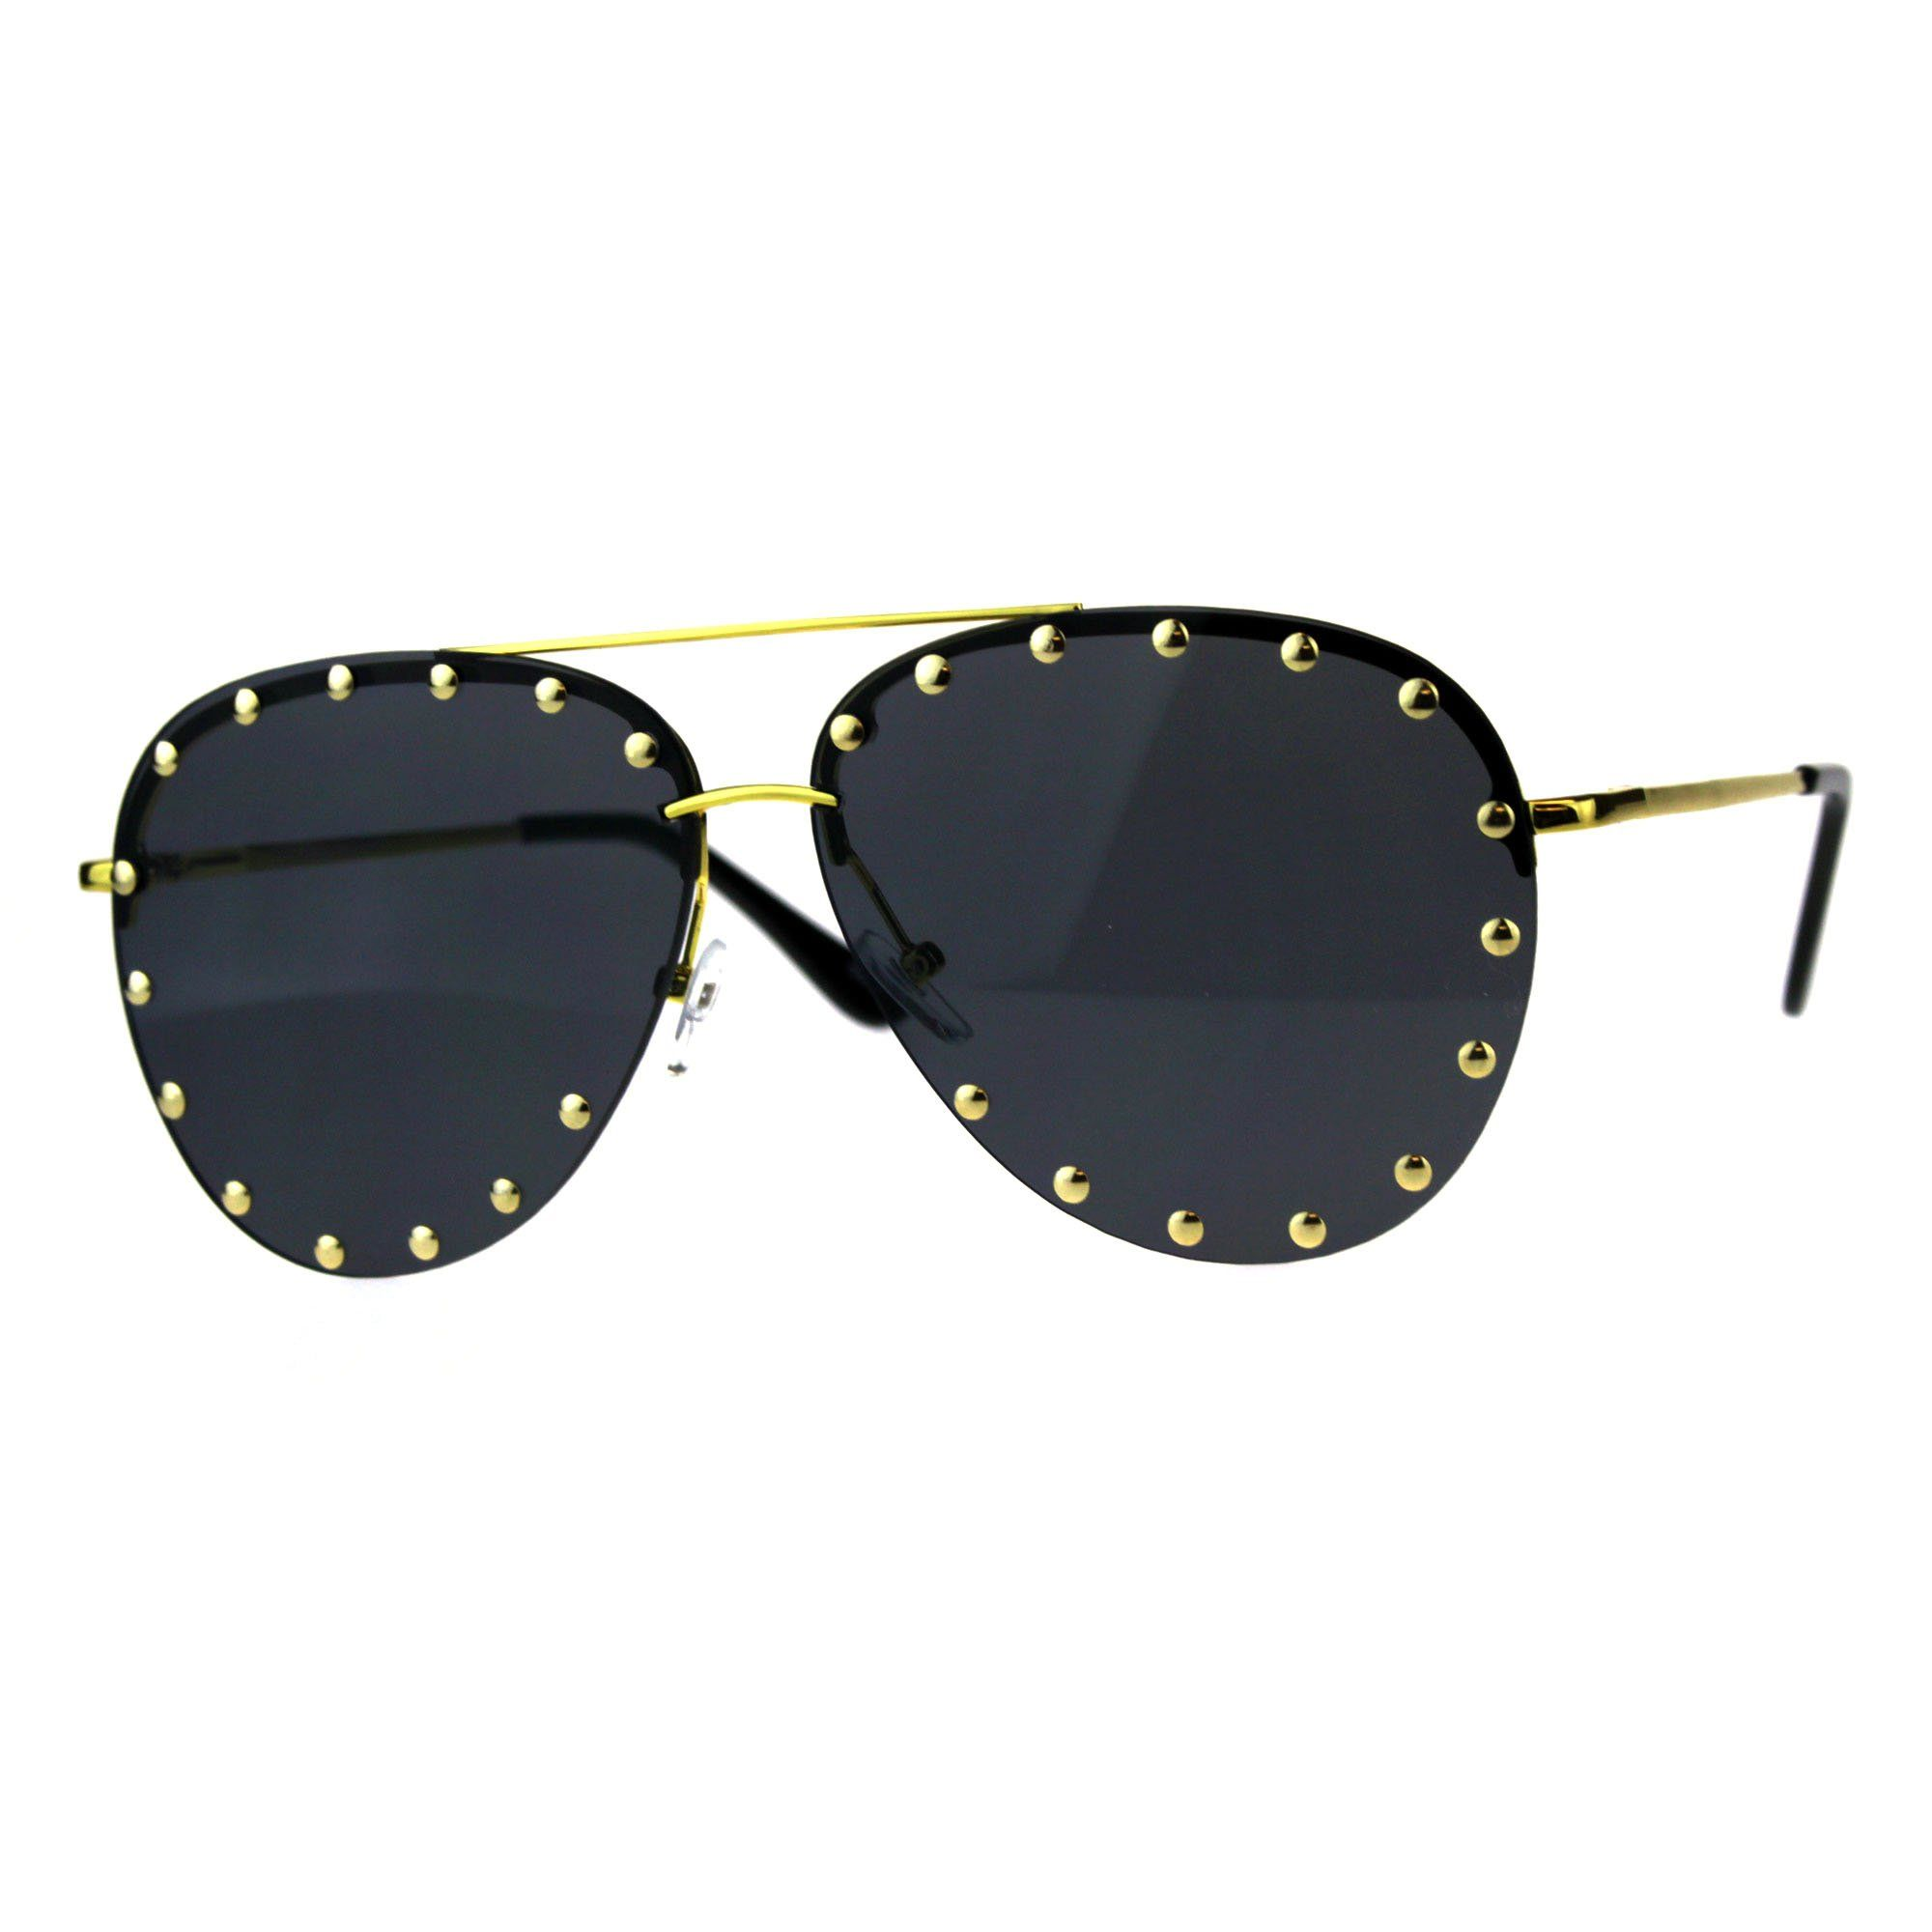 42760a6c5a1da Gold Studs Aviator Sunglasses